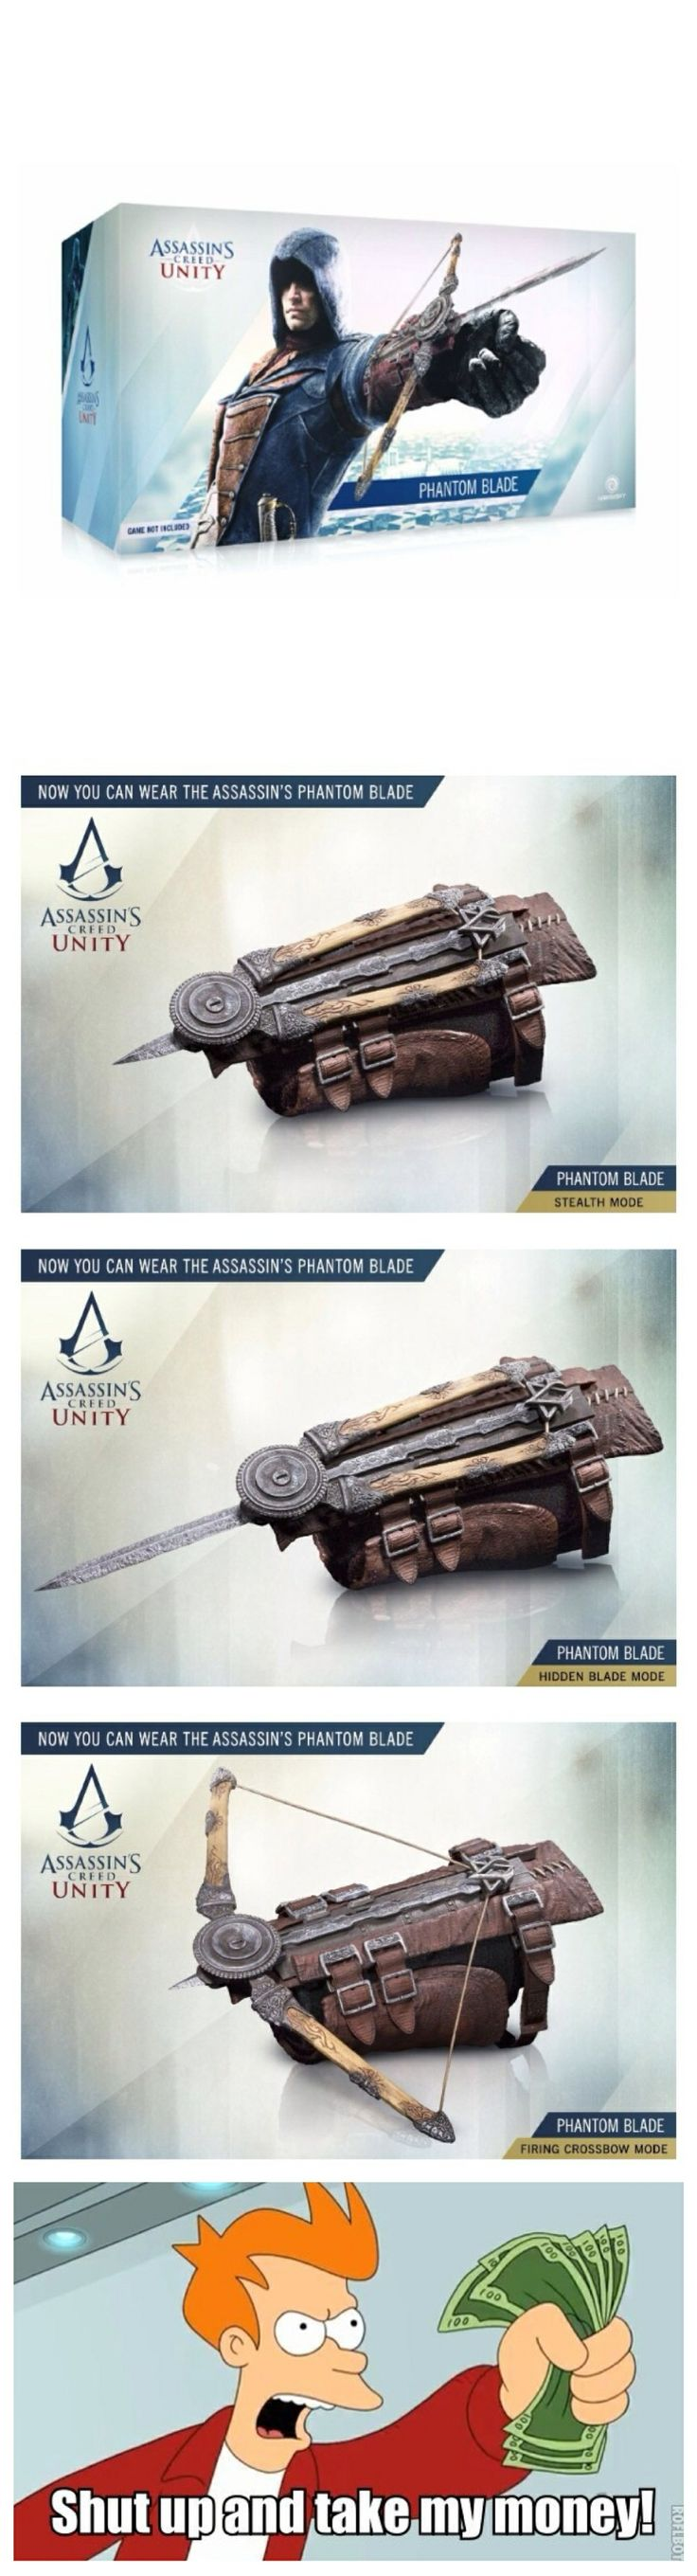 Assassin's creed unity (phantom blade)